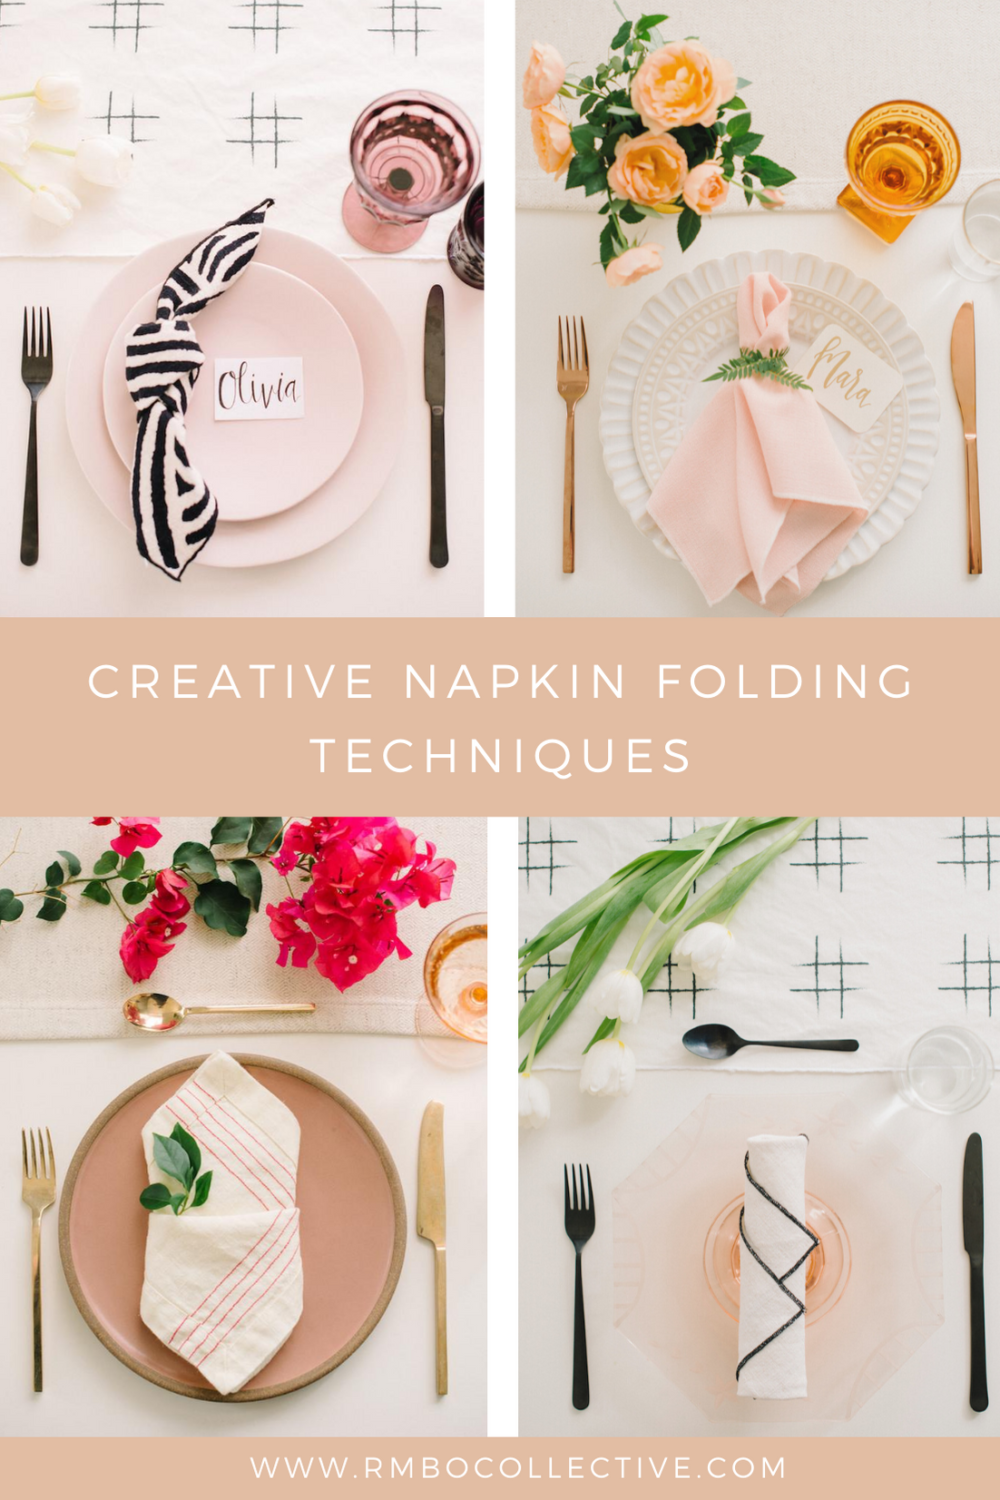 9 creative napkin folding techniques to try on your tablescape.